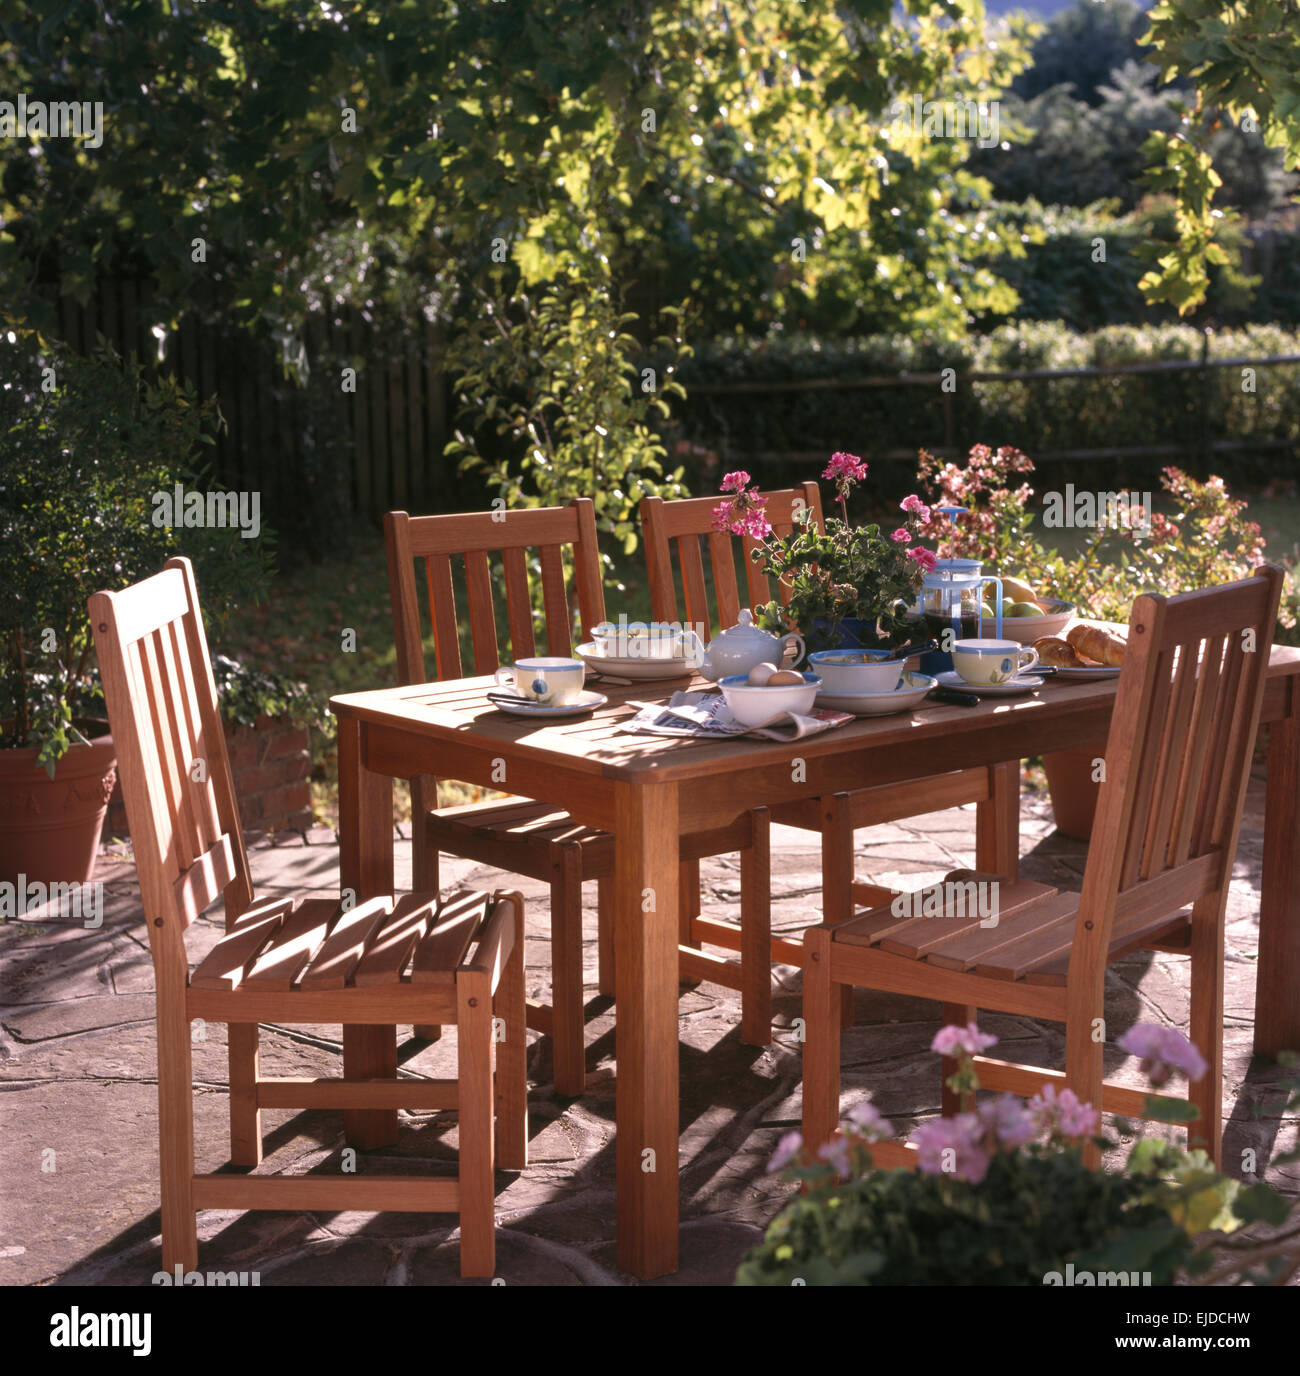 Wooden chairs at table set for lunch on sunlit patio in country garden & Wooden chairs at table set for lunch on sunlit patio in country ...